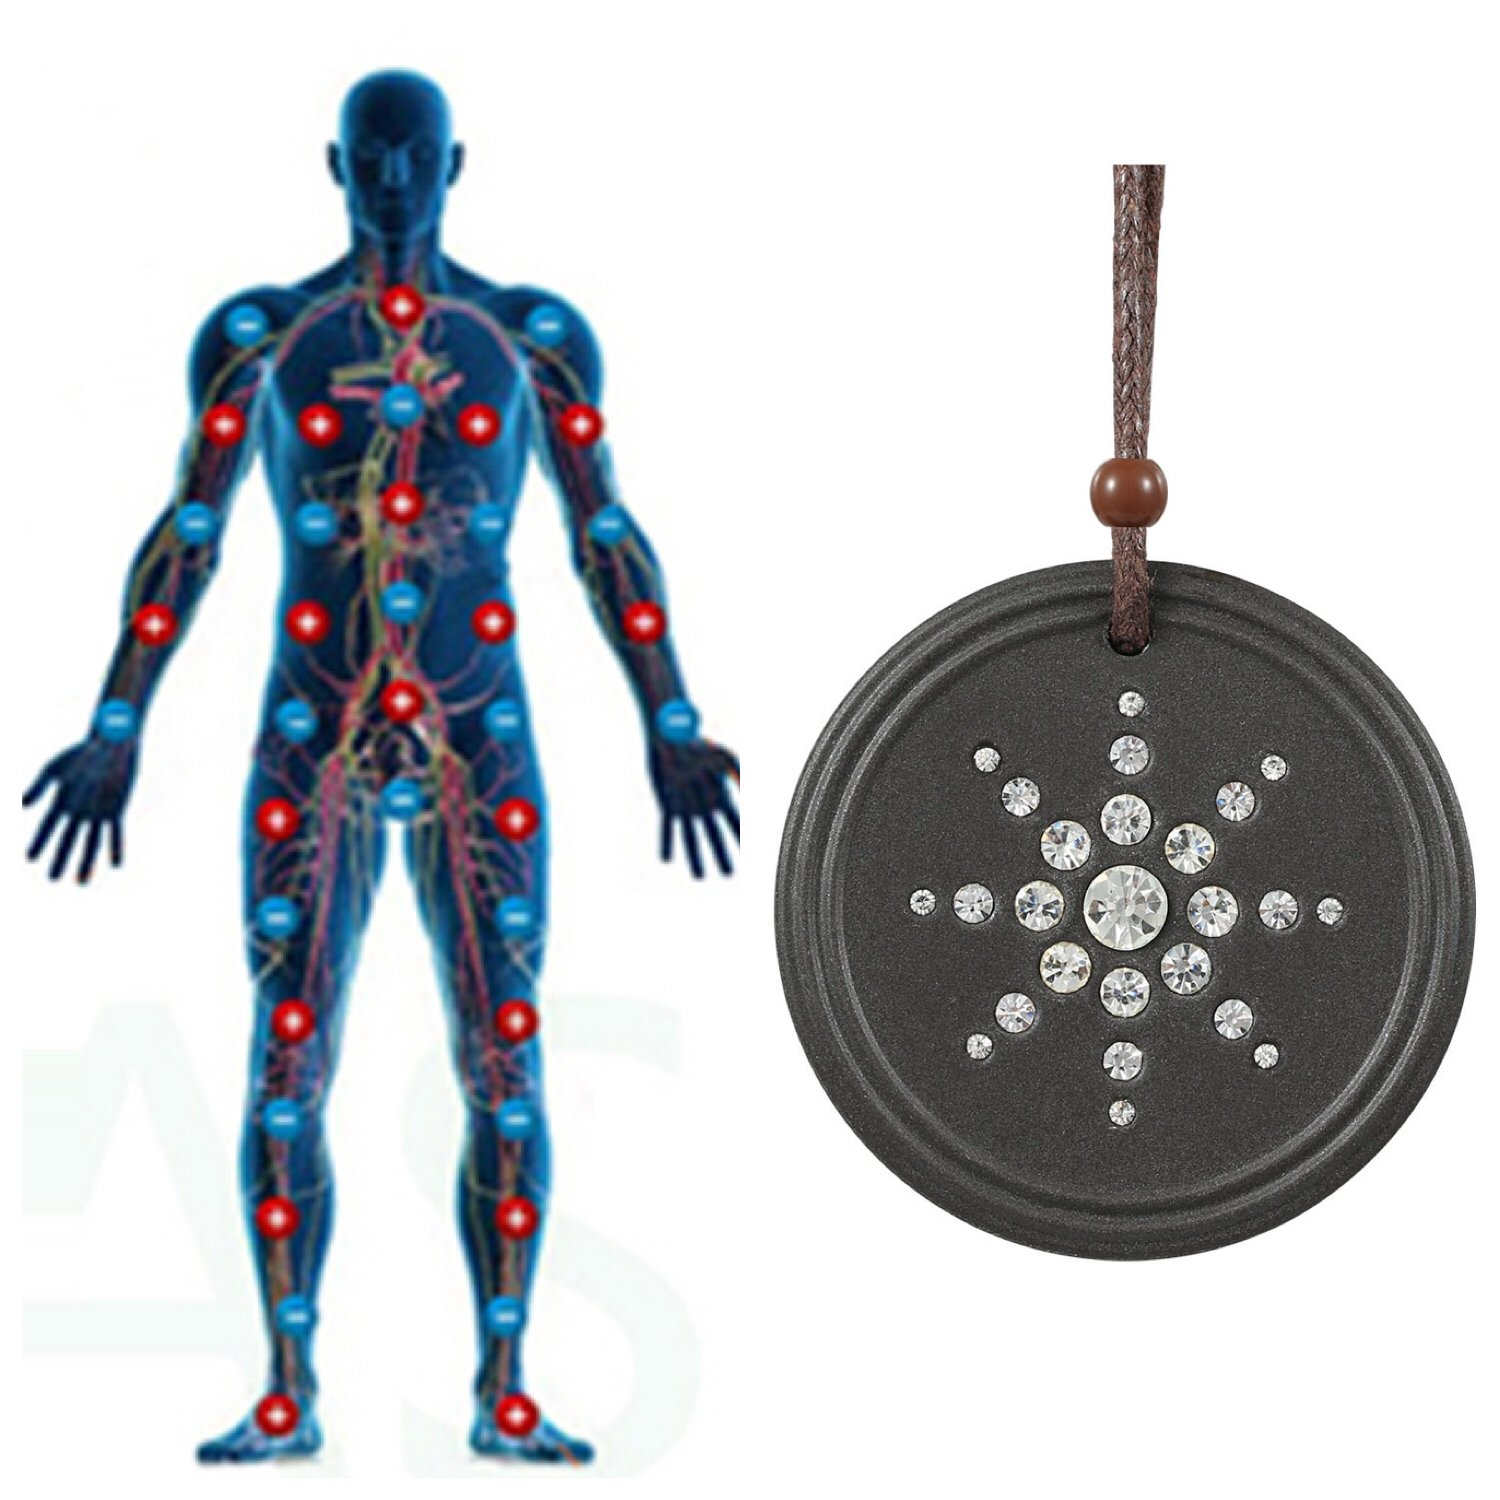 Electromagnetic Radiation Protection Necklace: Amazon.com: Anti EMF Radiation Protection Pendant Energy